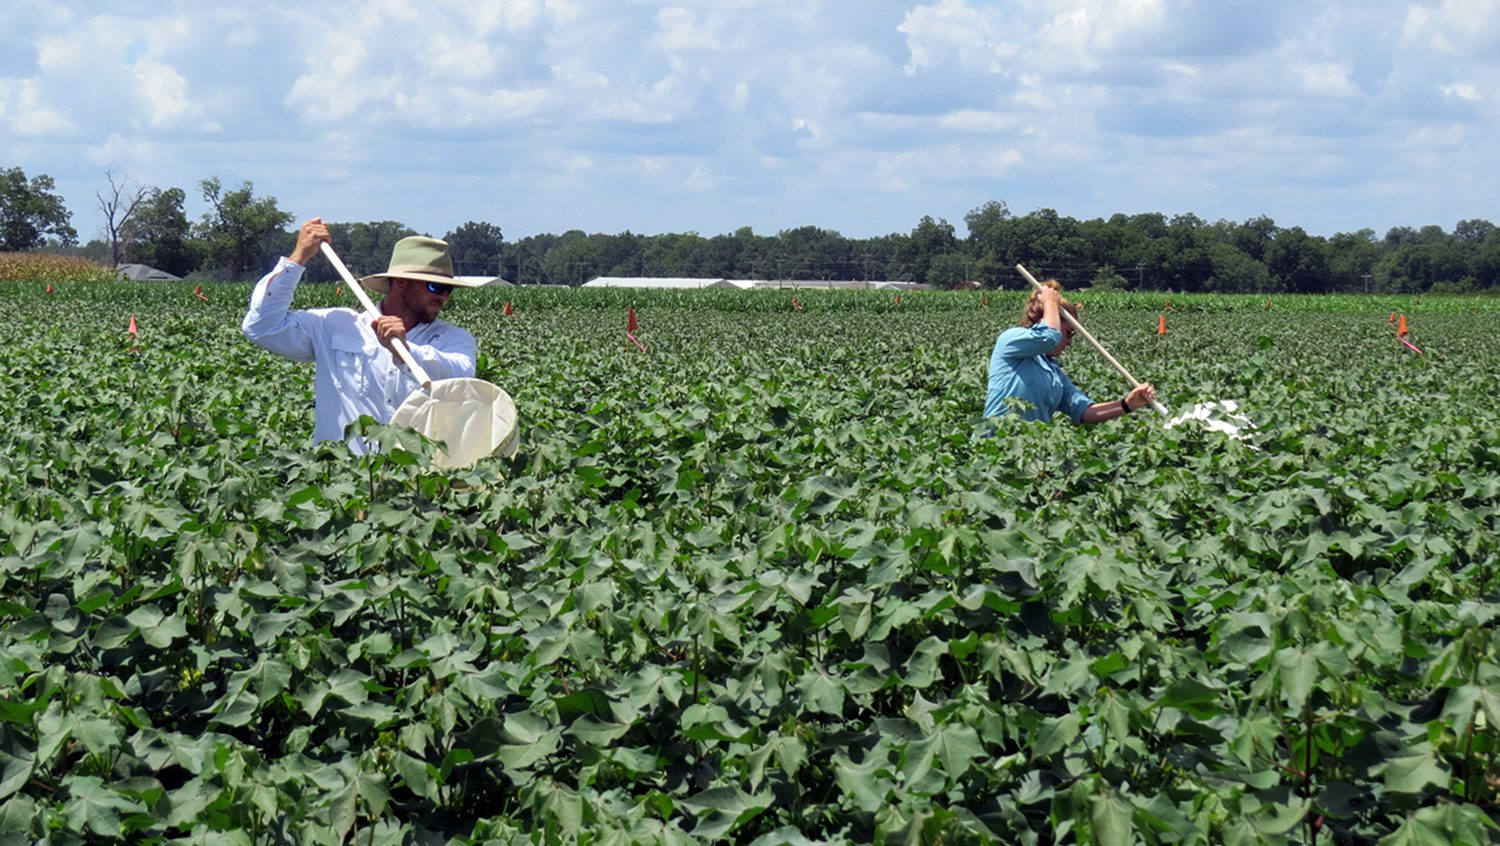 Sweep net sampling in a cotton field